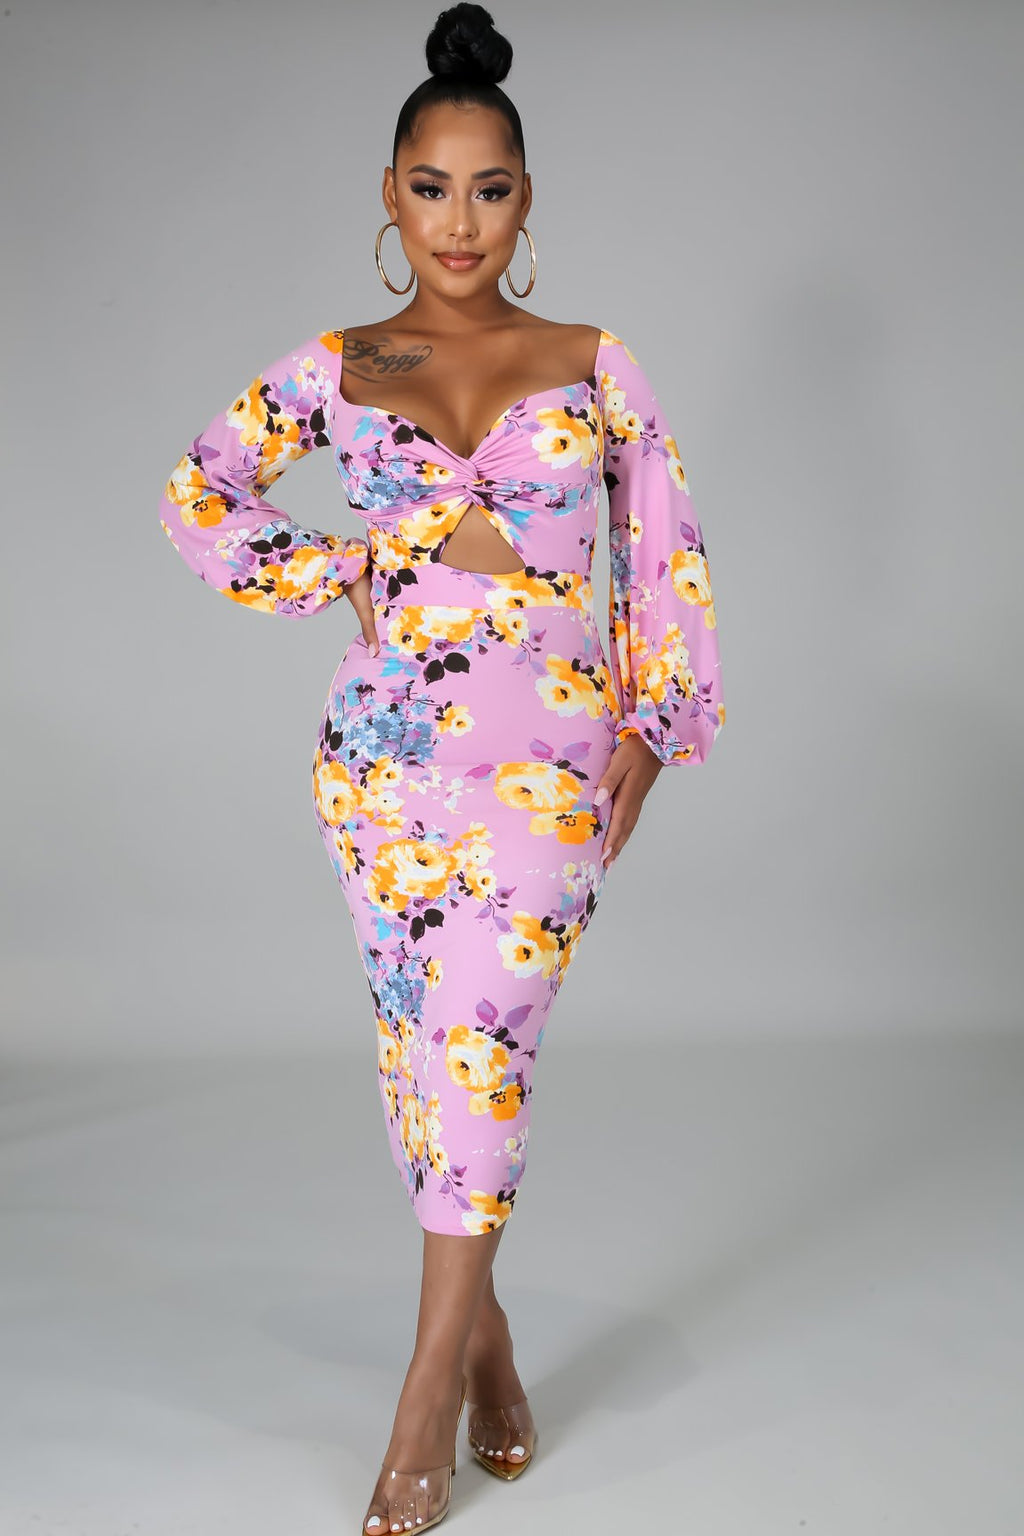 ROBE FLORALE MARGAUX